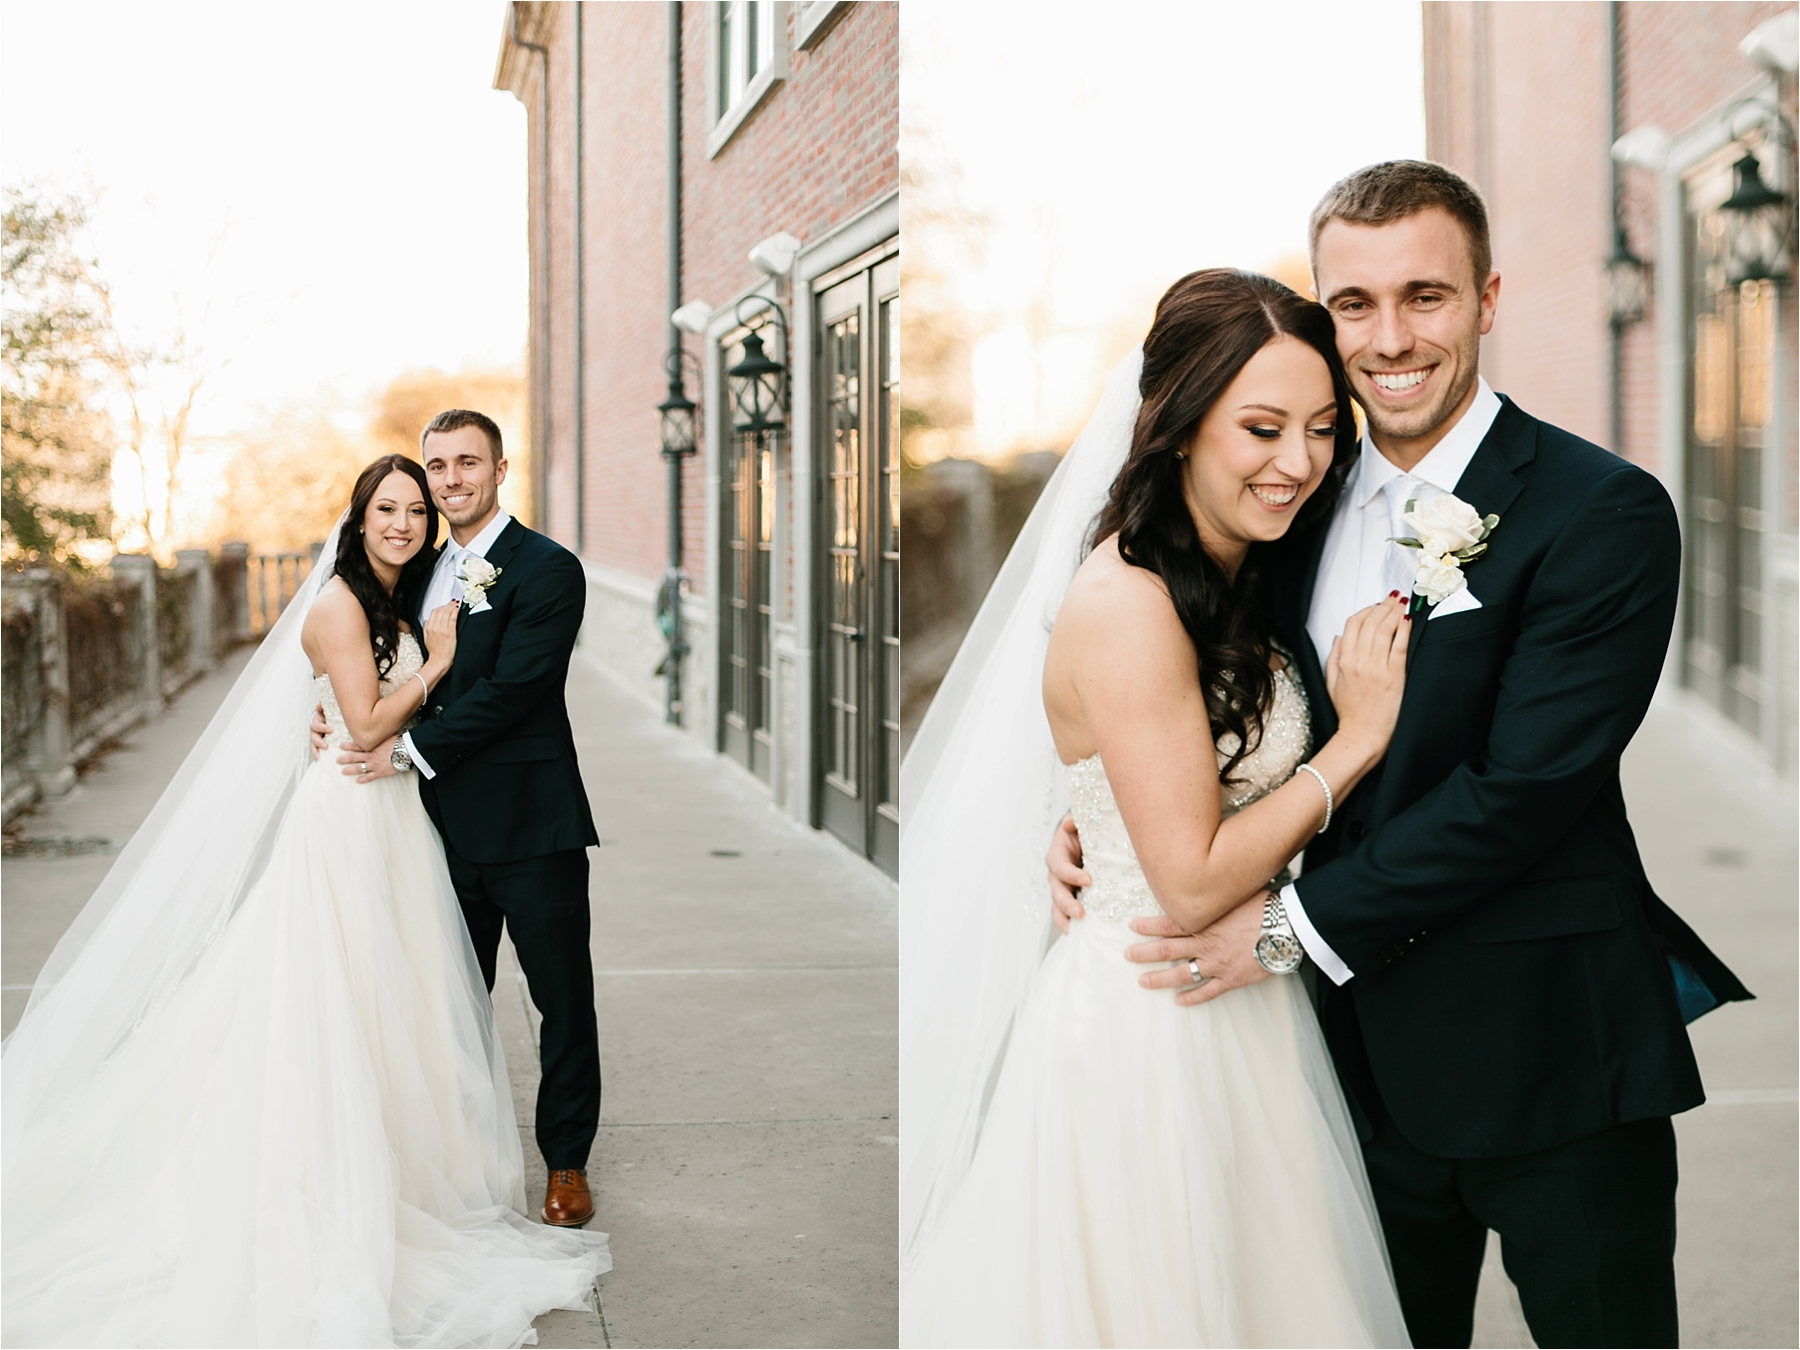 Chrissy + Zach __ The Windsor at Hebron Park Wedding by North Texas Wedding Photographer _ Rachel Meagan Photography __059